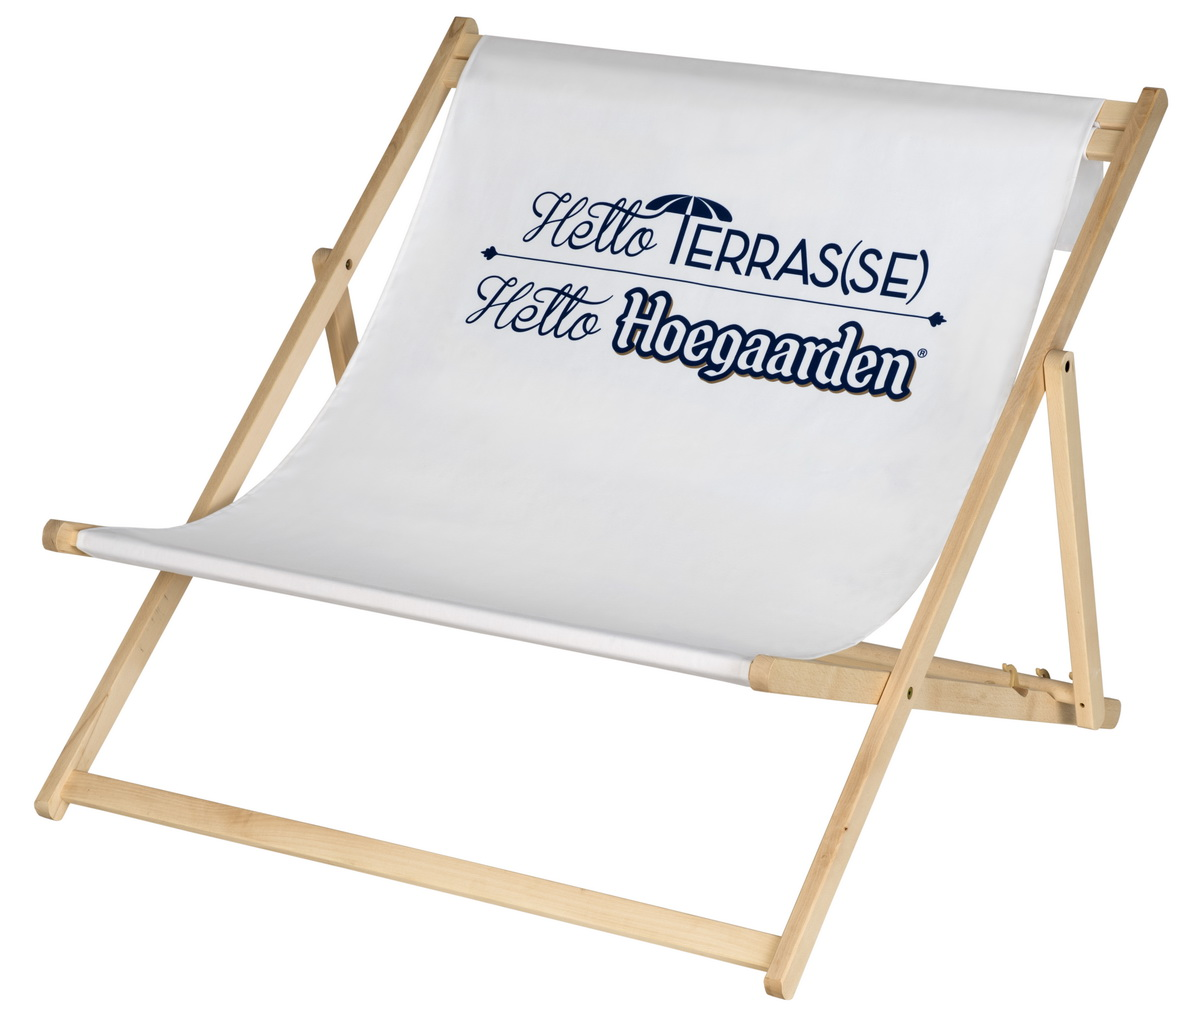 1. Promotional double deck chair